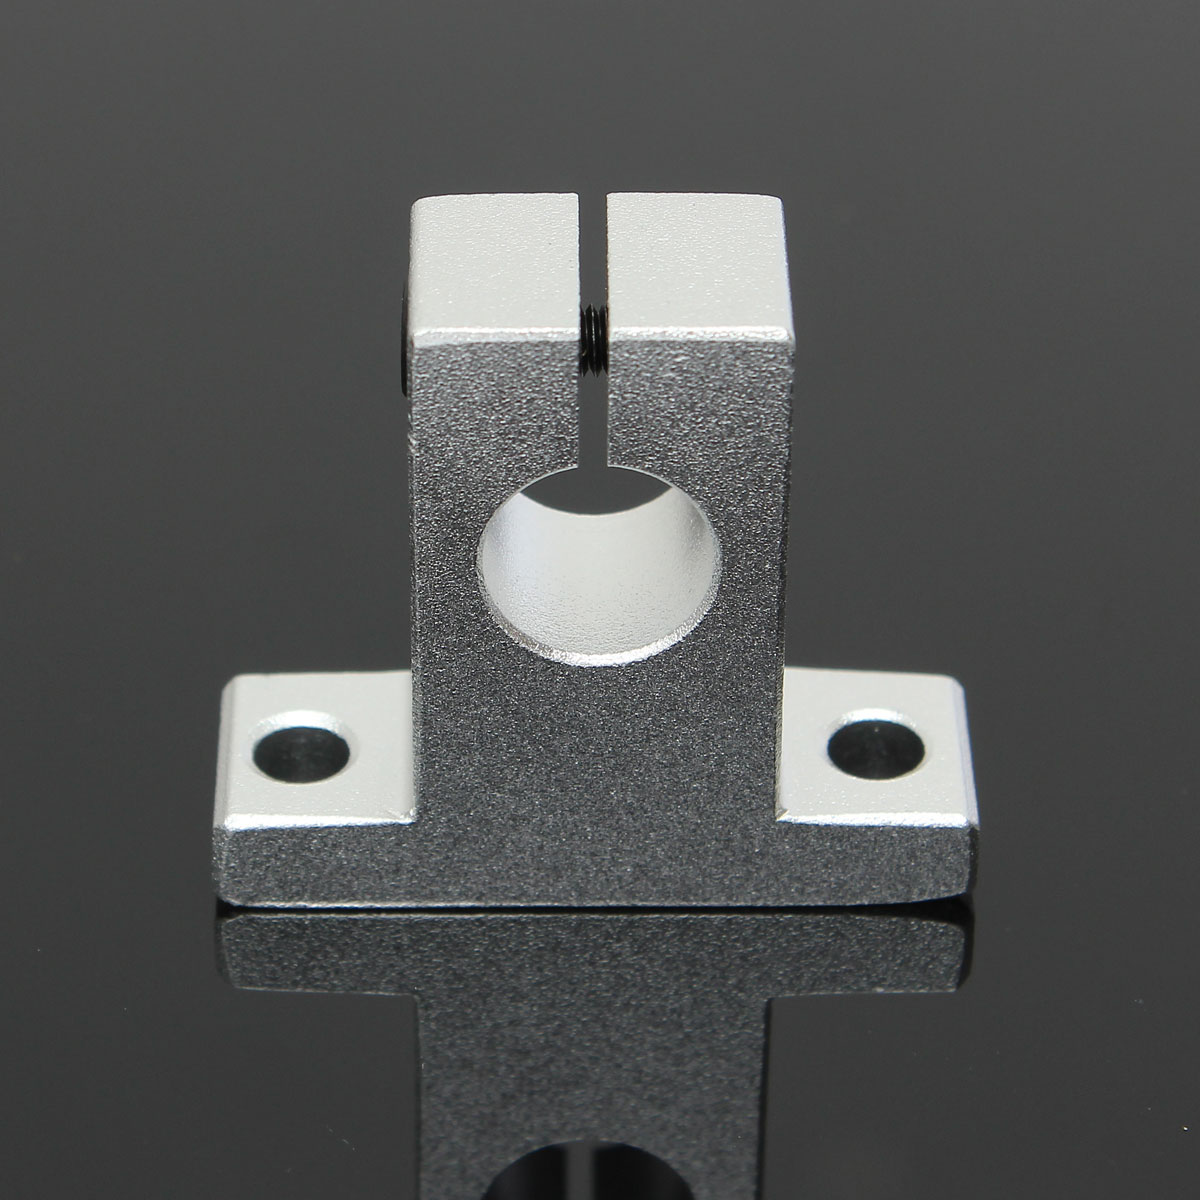 SK12 12mm Linear Bearing Rail Shaft Support Brackets XYZ Table CNC Router Accessories 42x14x37.5mm sk16 sh16a 16mm linear rail shaft support xyz table cnc 2pcs lot